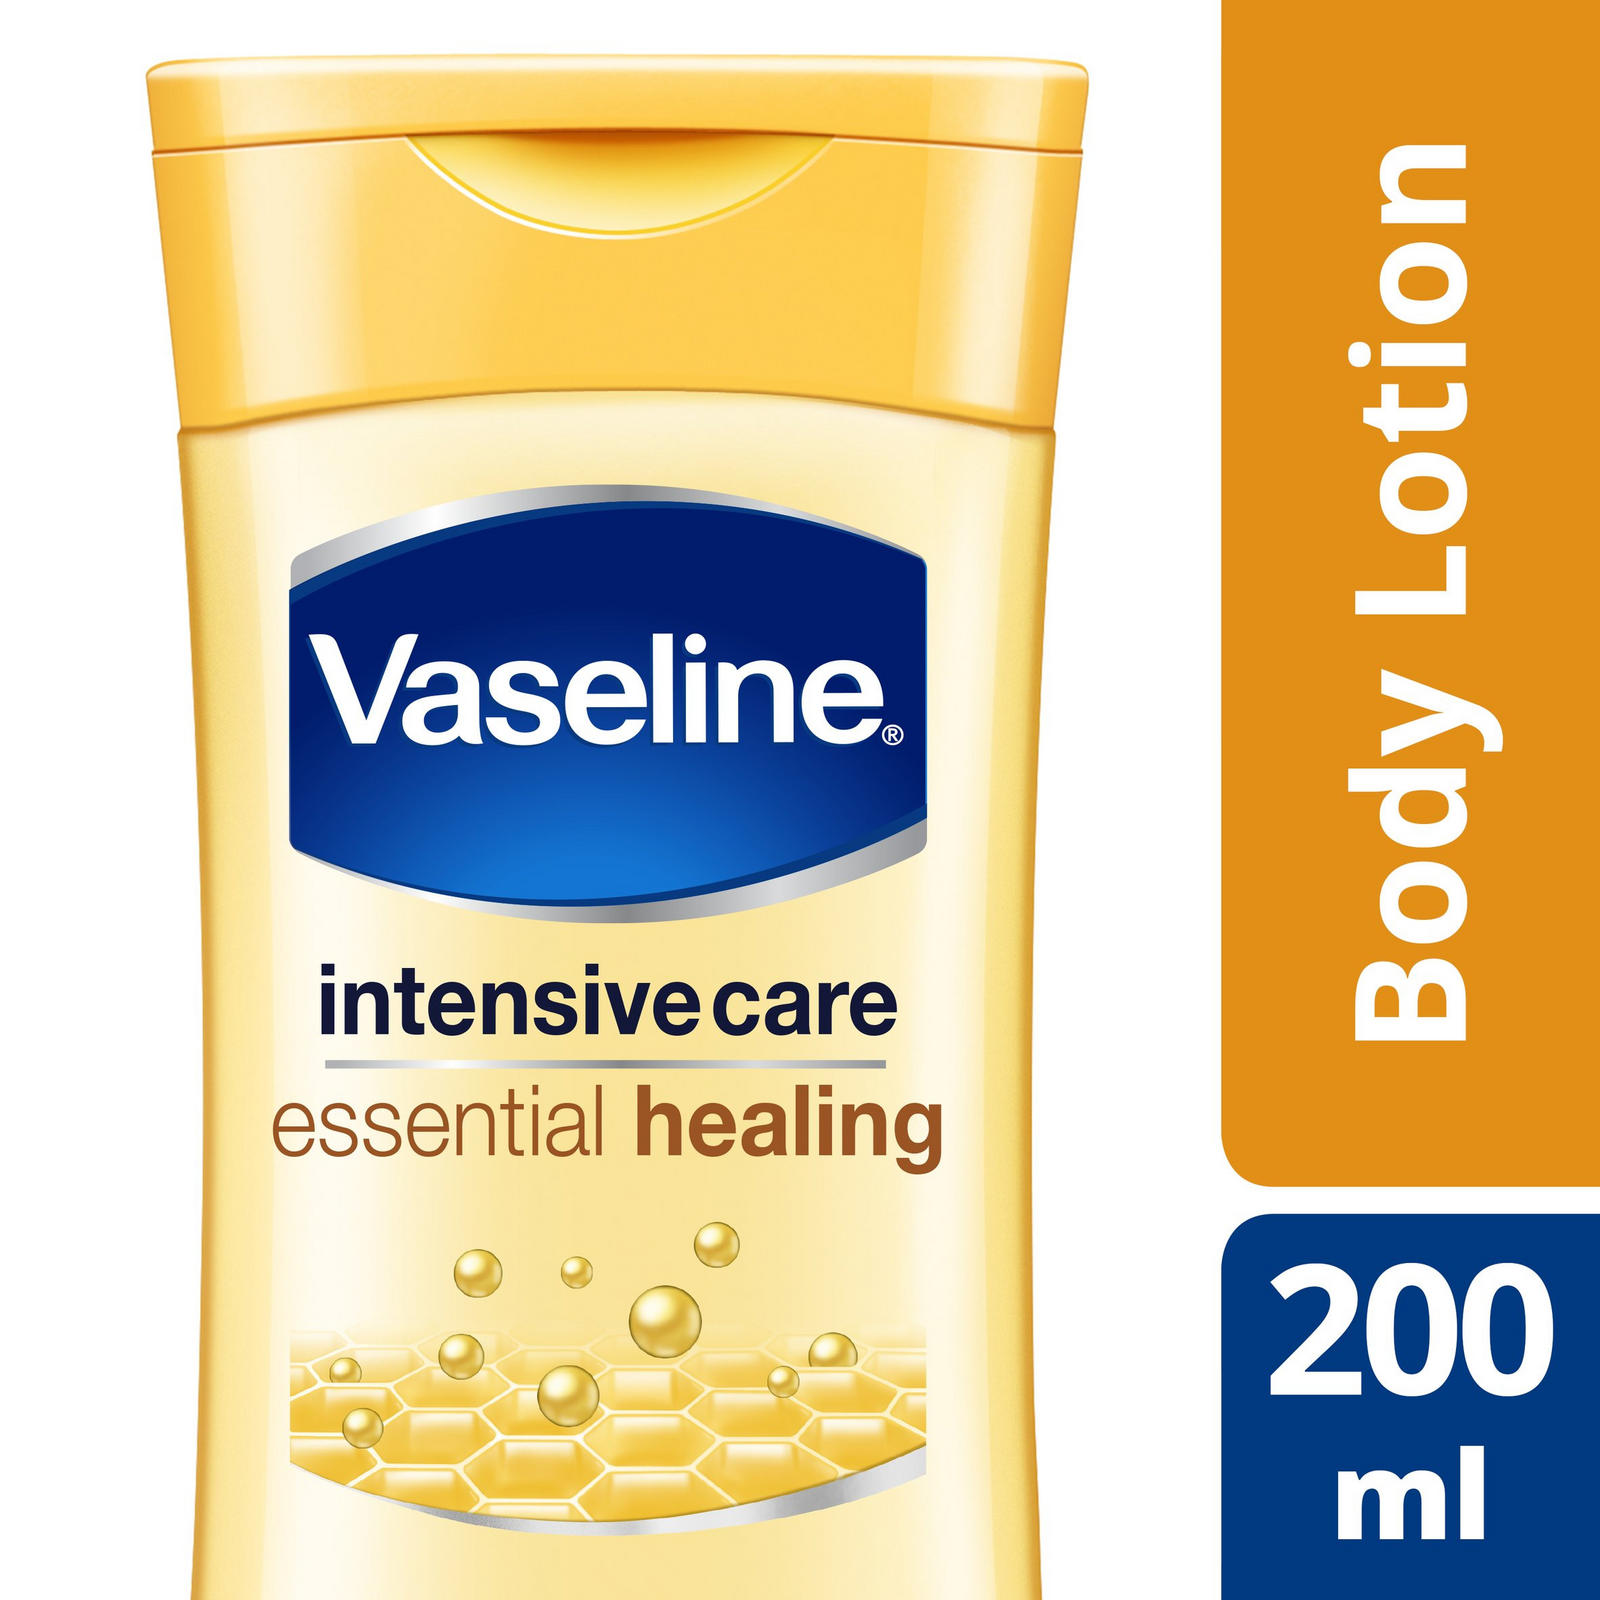 Vaseline Intensive Care Essential Healing Lotion 200ml